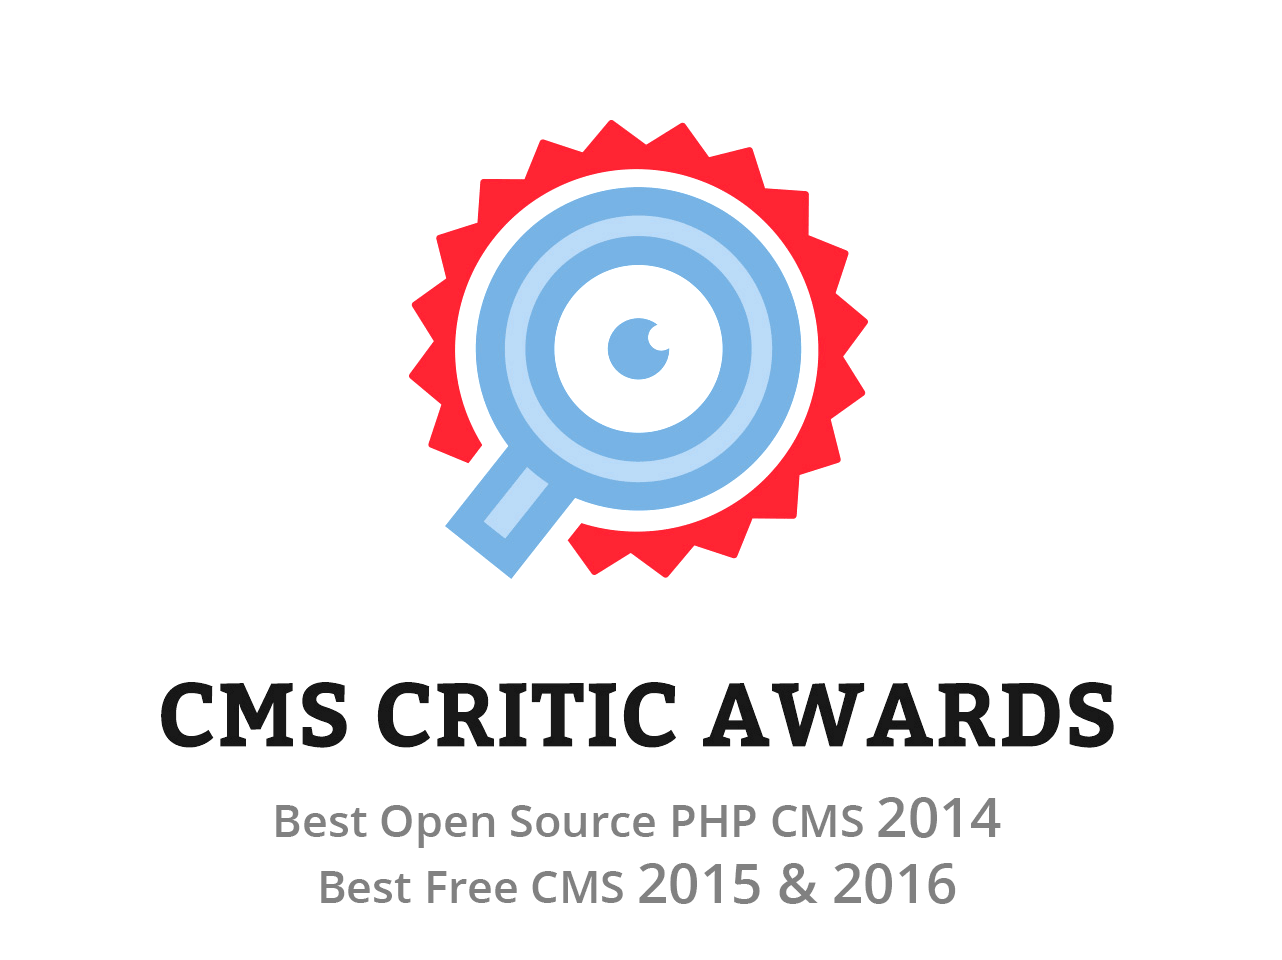 Best PHP CMS for several years in a row